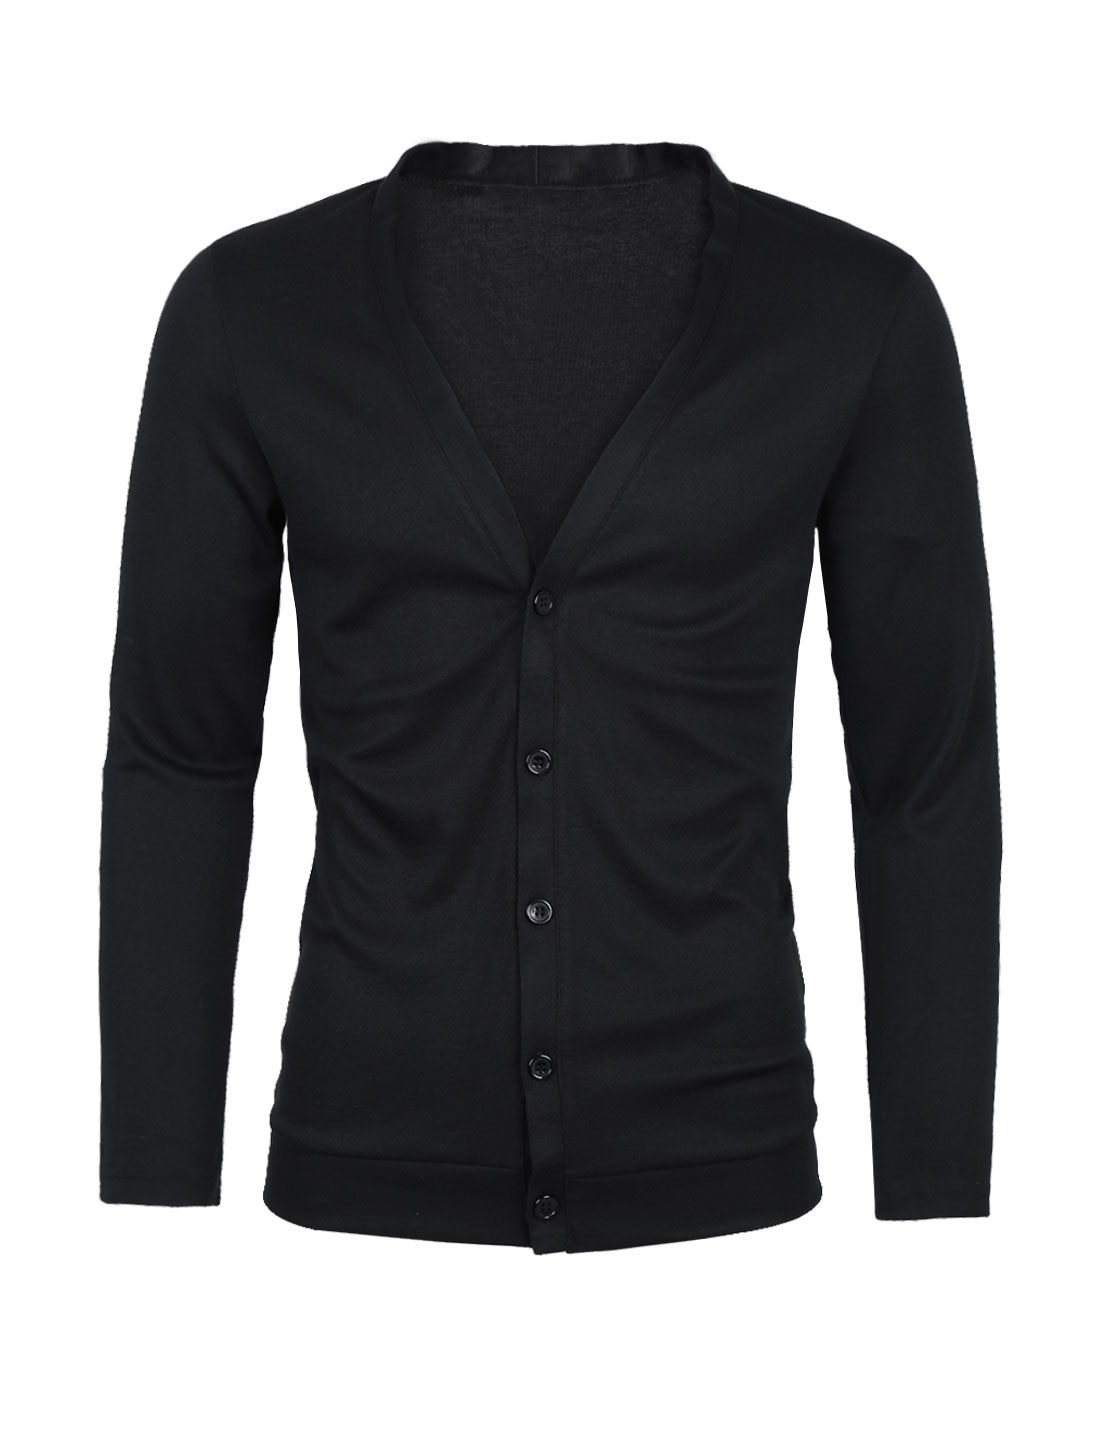 Men Deep V Neck Long Sleeve Button Down Slim Fit Cardigan Black L